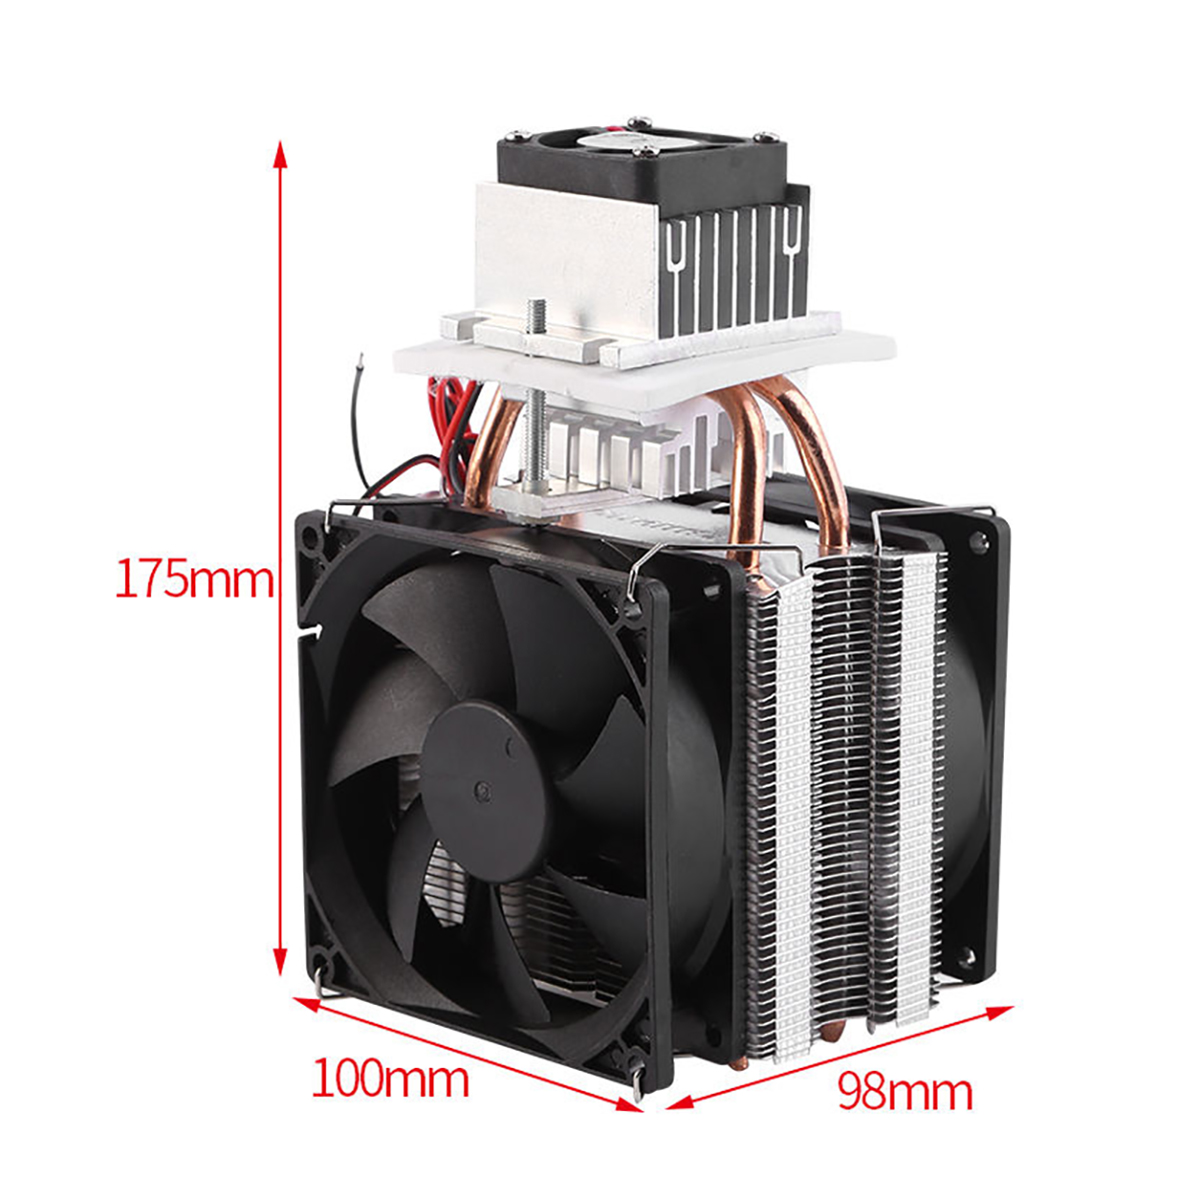 Mayitr Practical Thermoelectric Peltier Semiconductor Cooler Refrigeration Cooling System Heatsink Kit Fan 12V for Air Cooling 1560w monoblock refrigeration unit suitable for 10m3 beverage cooler or bottle cooler room